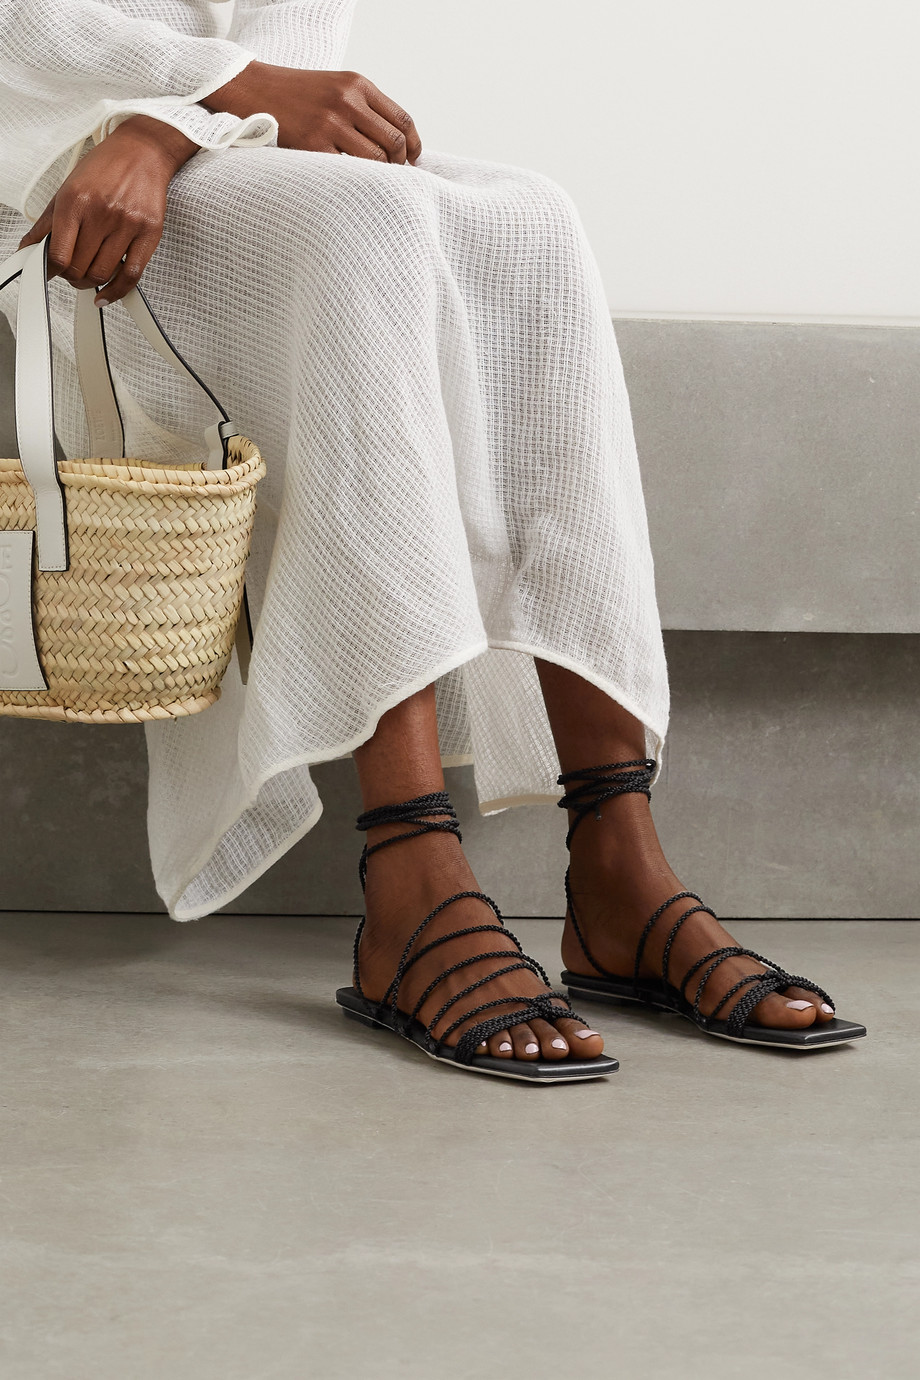 Serena Uziyel Ophilia braided rope sandals